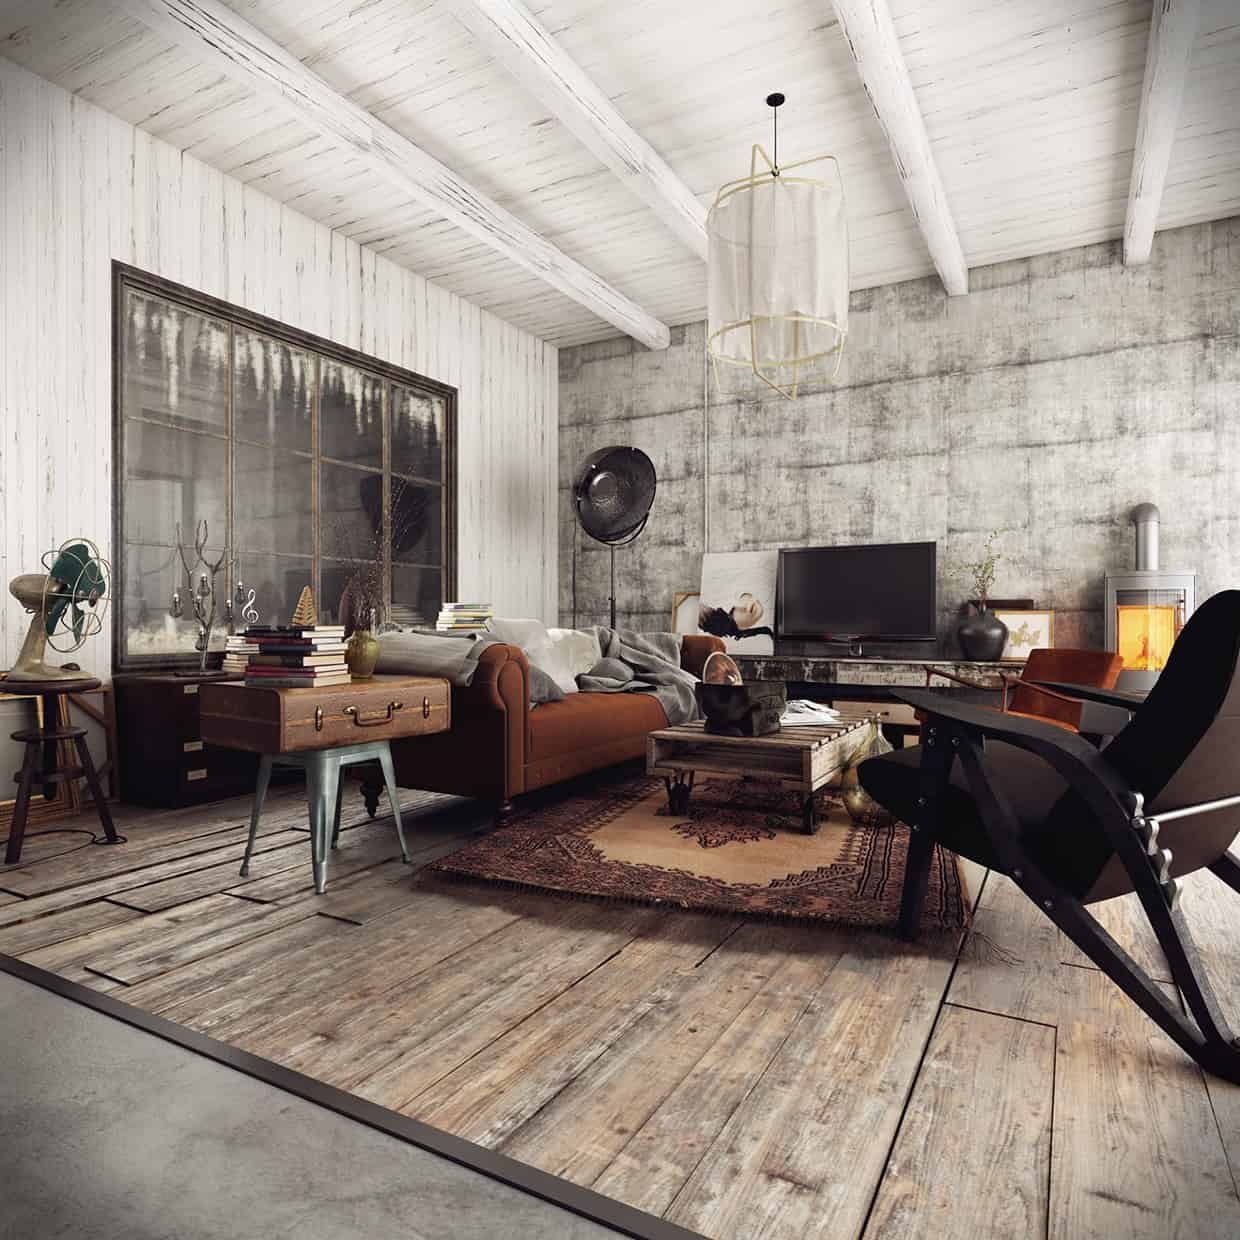 Cool Rustic Industrial Living Room Ideas To Inspire Download Free Architecture Designs Scobabritishbridgeorg